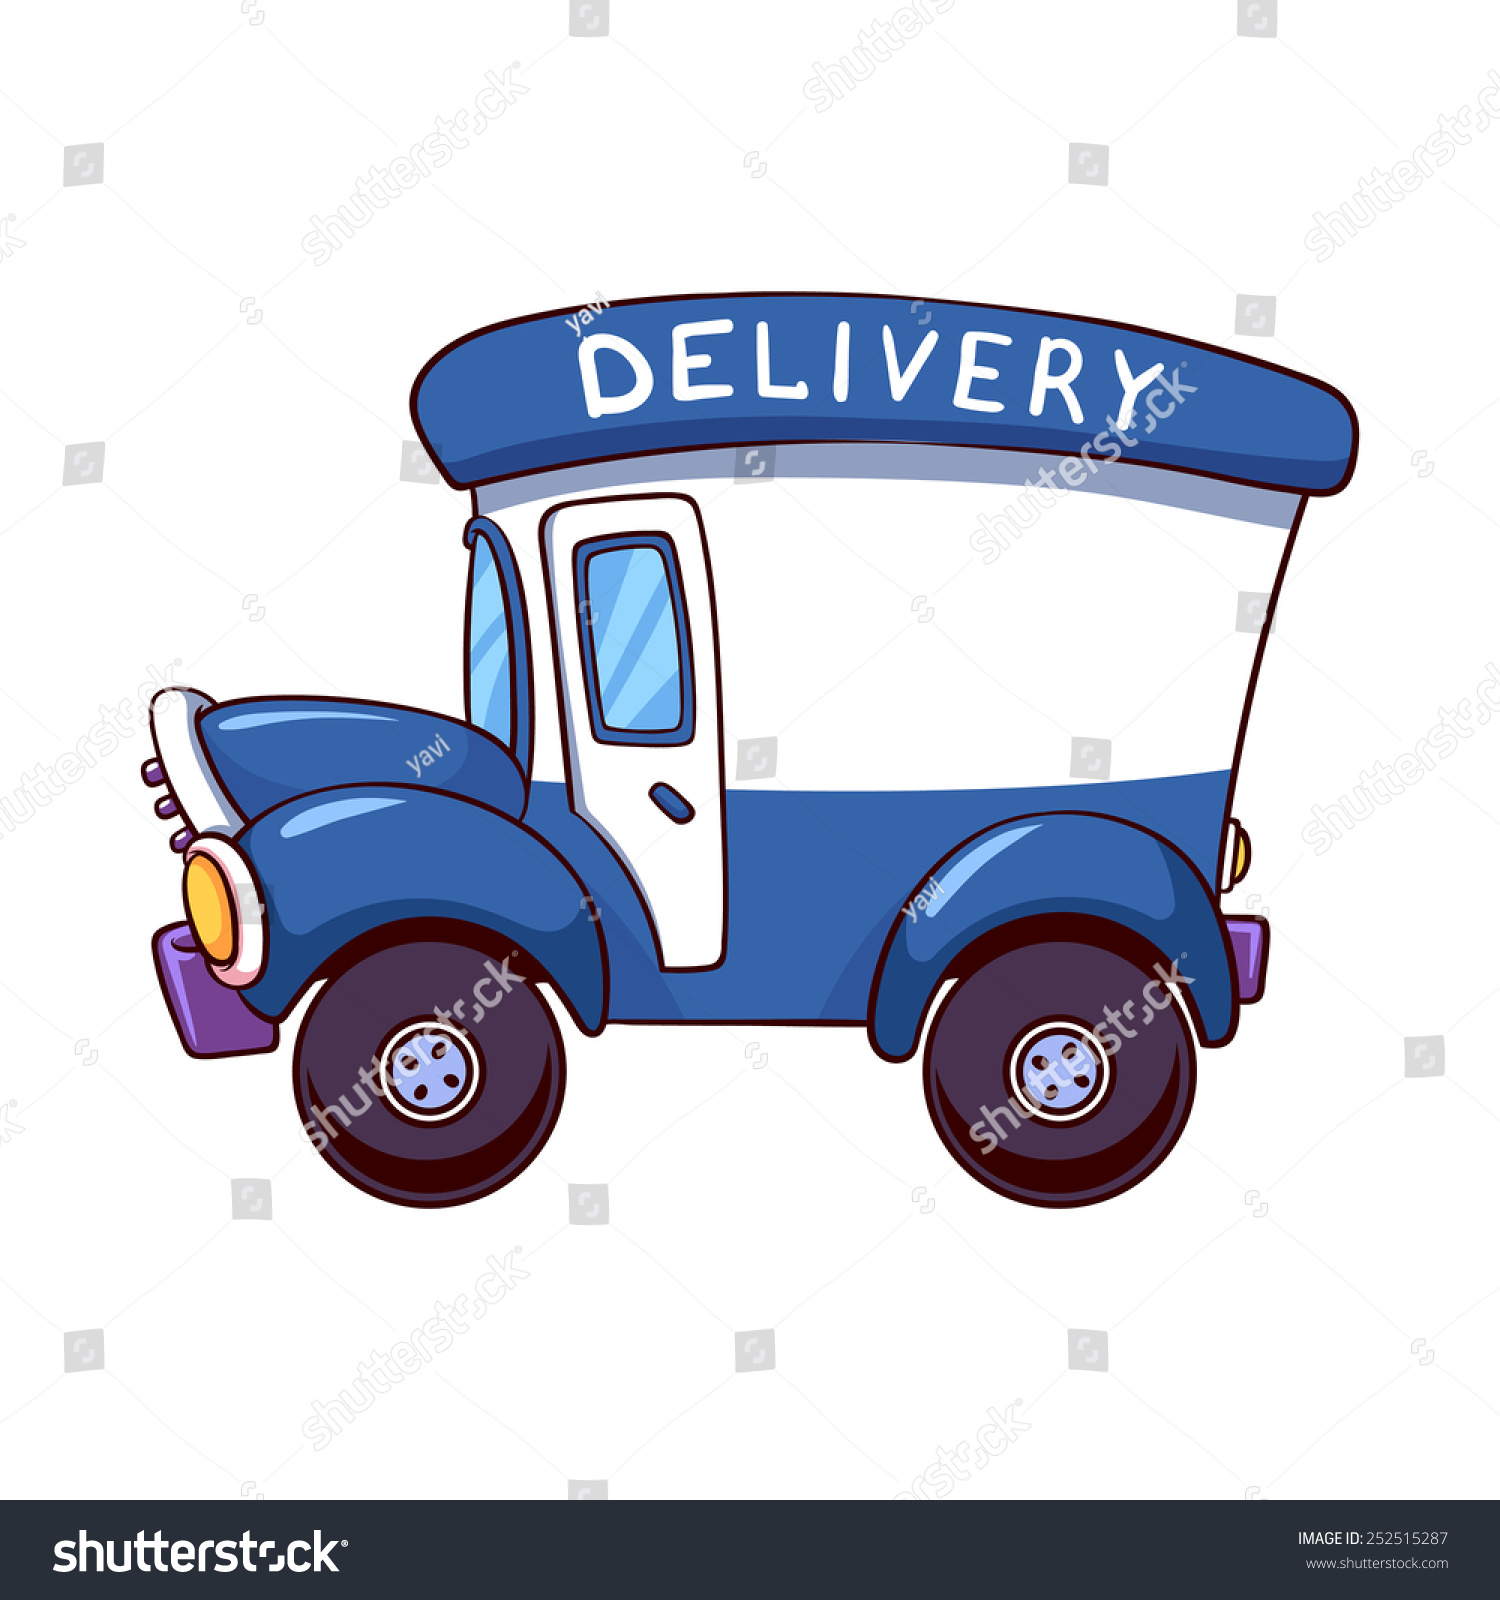 delivery truck clipart images - photo #18